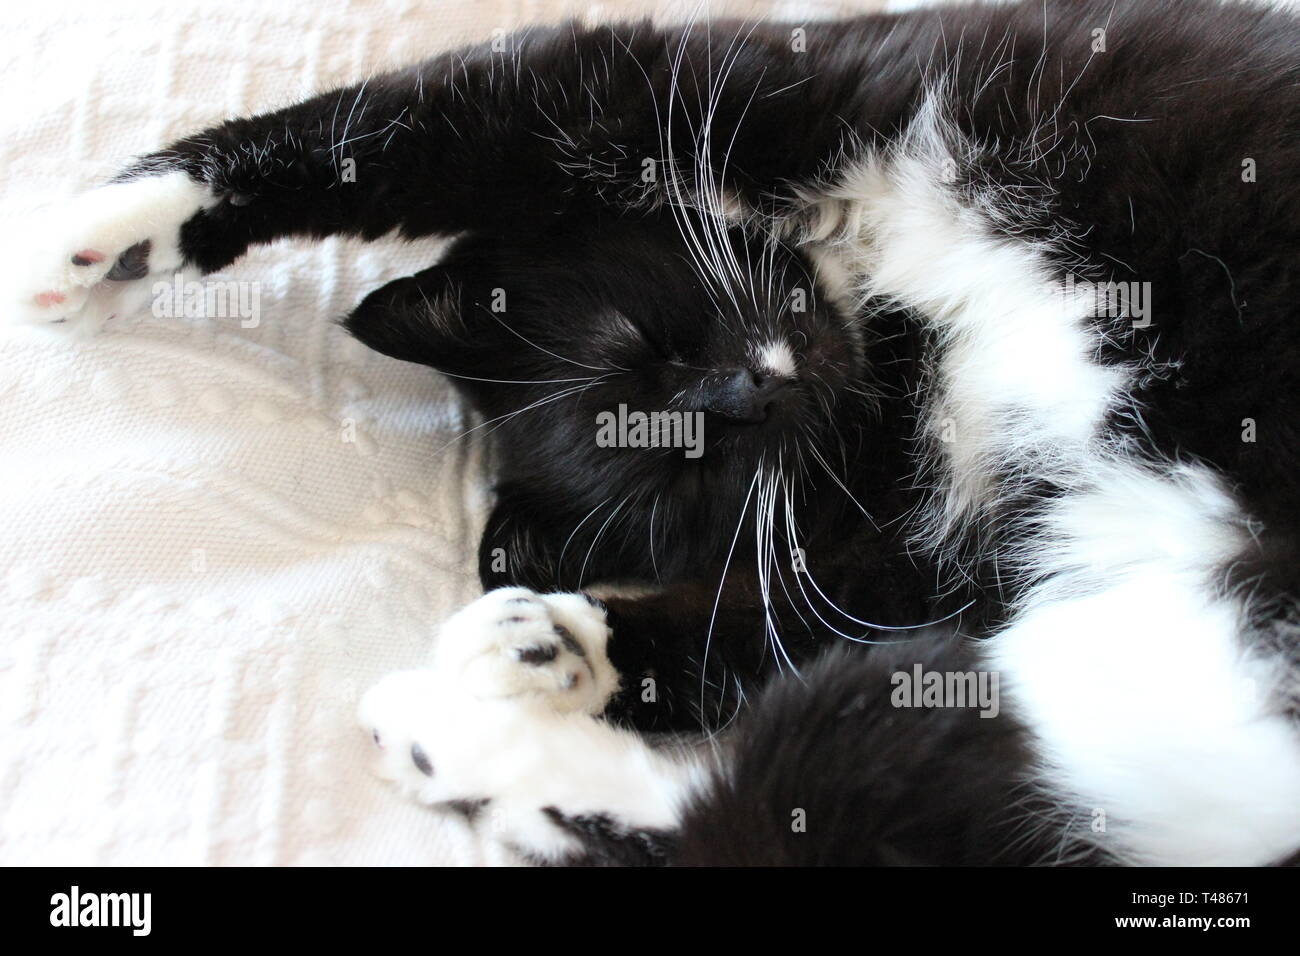 Cute cat lying on bed stretching - Stock Image